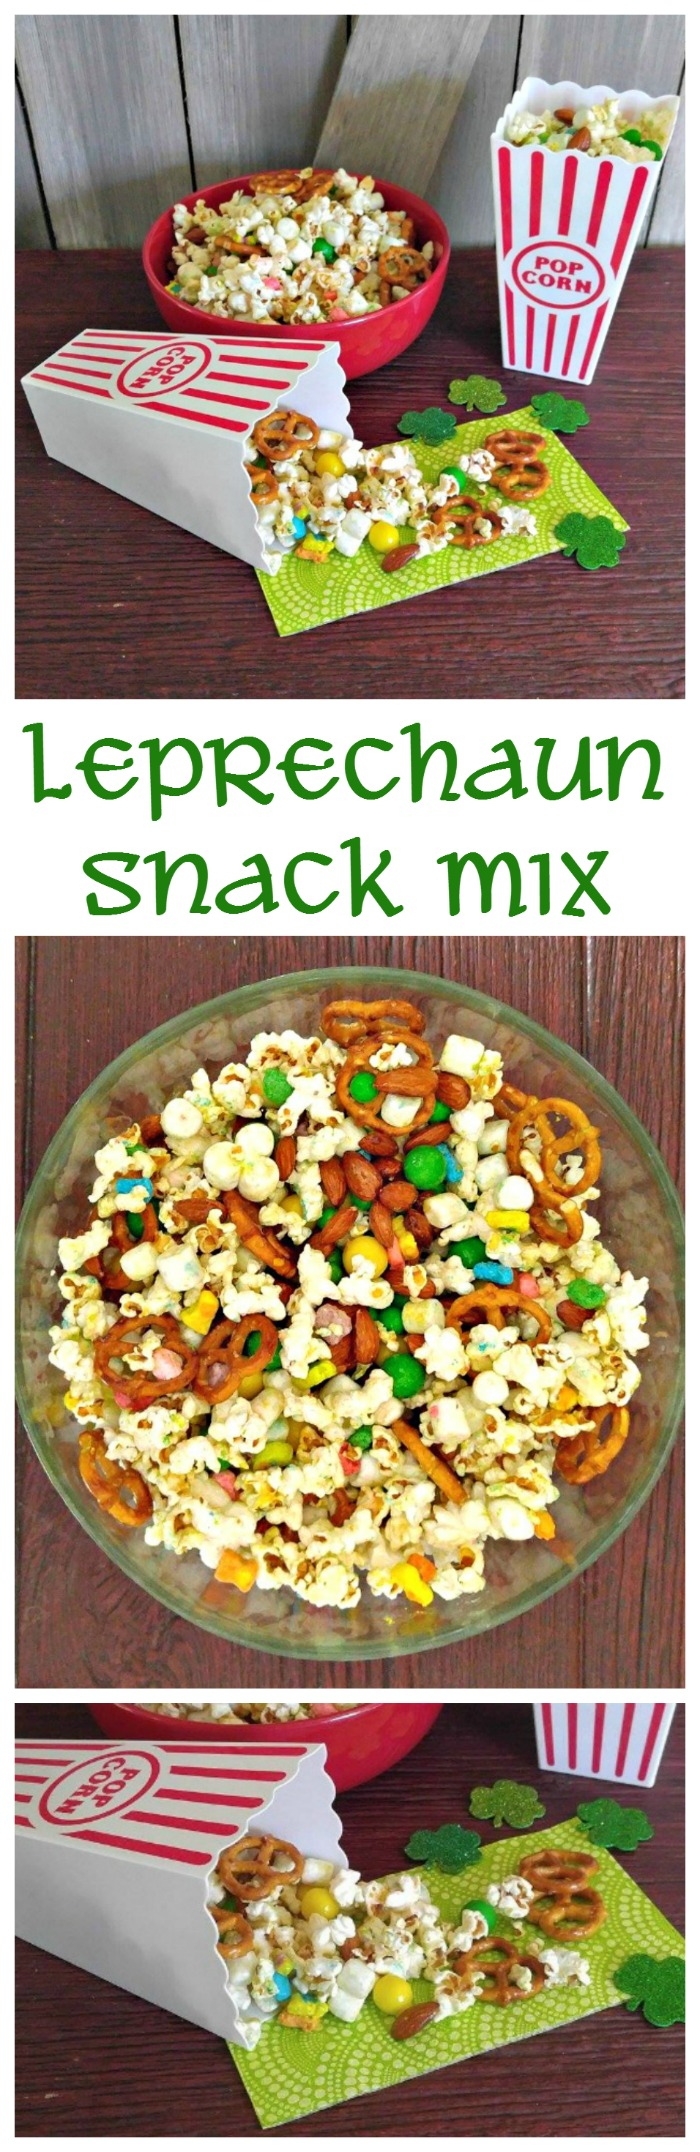 Leprechaun Snack Mix - Time for Some Crunch!